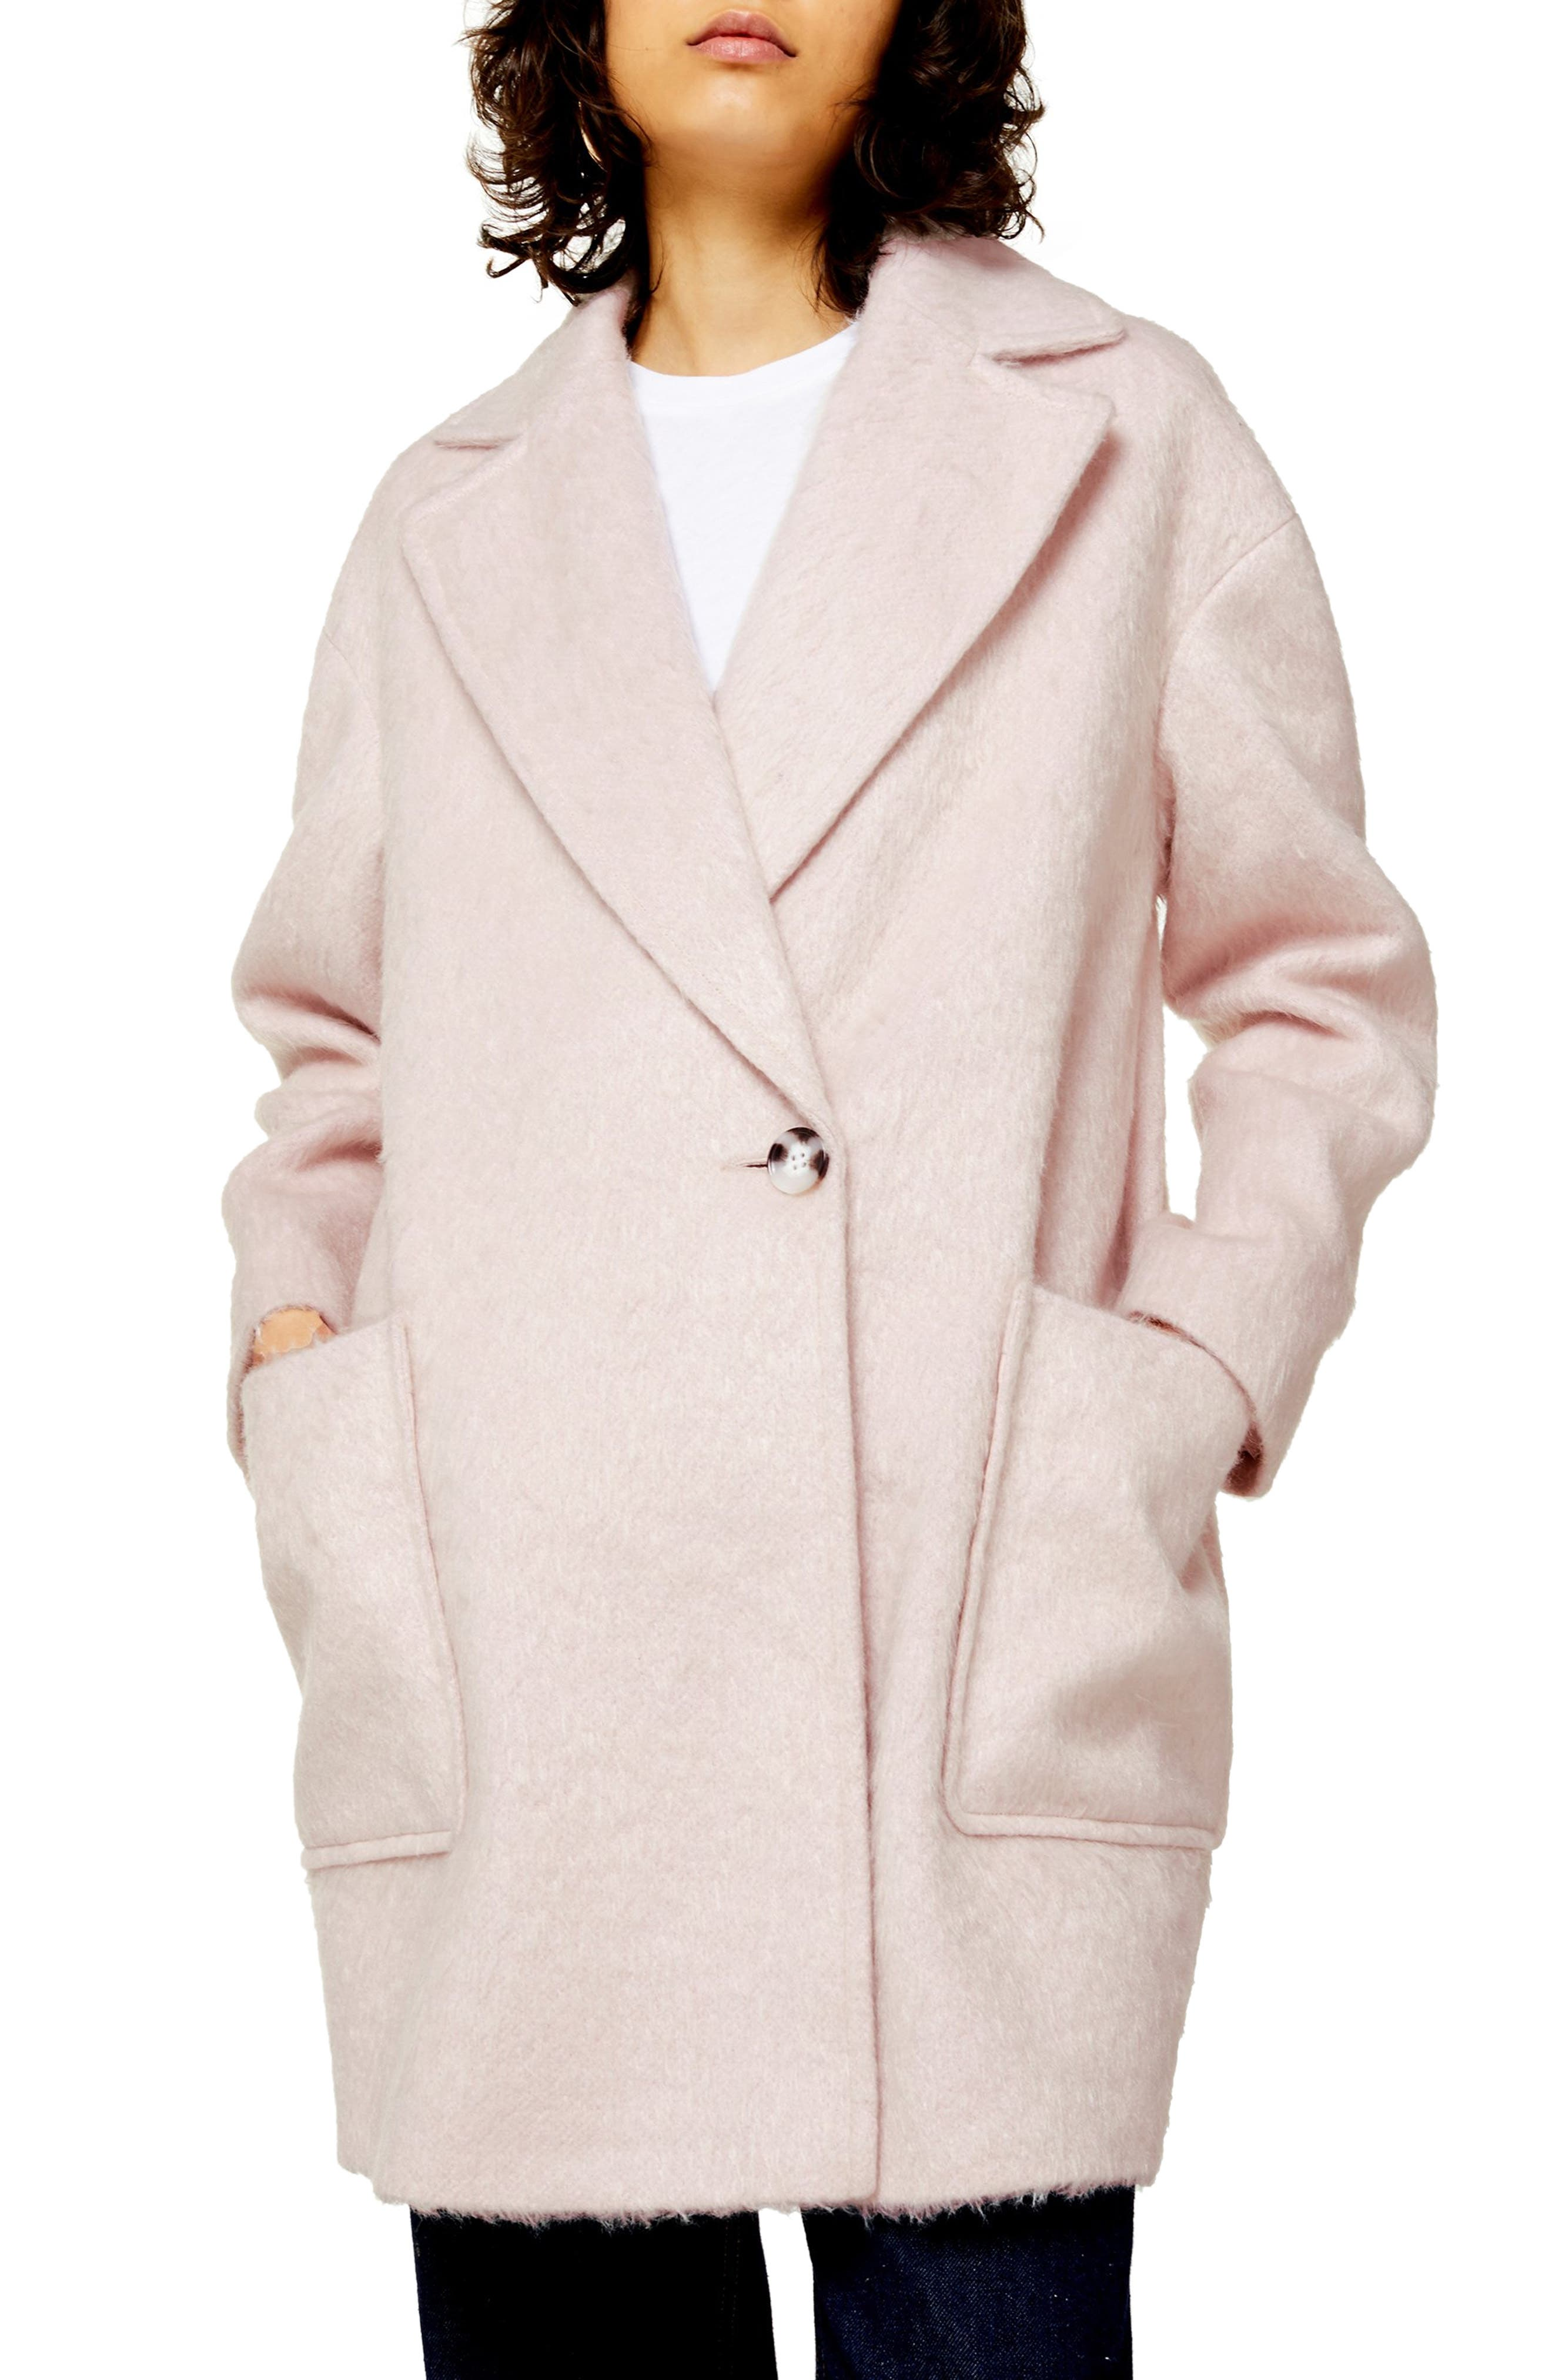 EAN 5045440643450 product image for Women's Topshop Carly Coat, Size 14 US (fits like 16-18) - Pink | upcitemdb.com